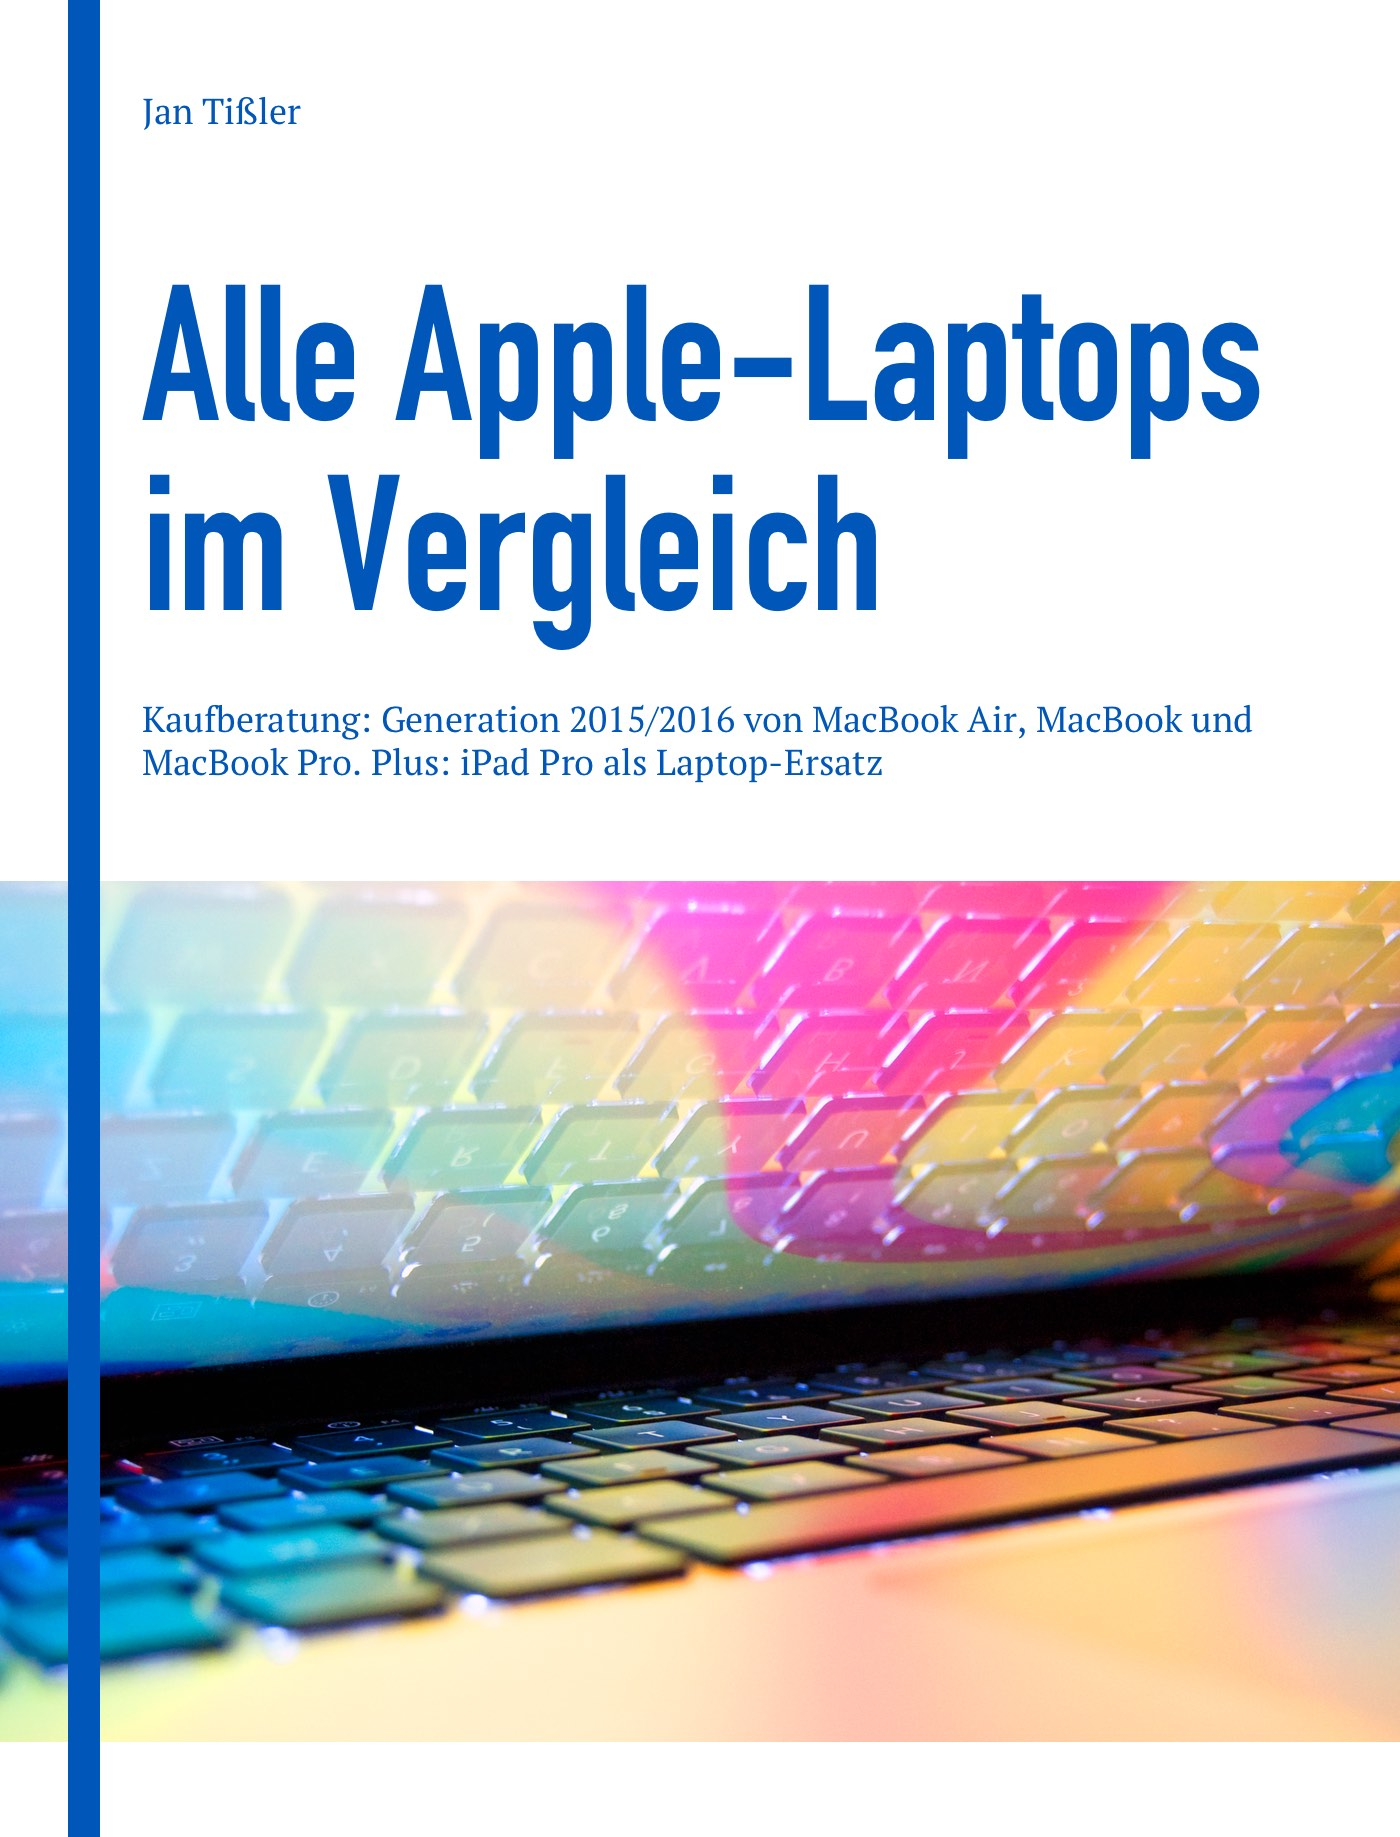 Cover image for Alle Apple-Laptops im Vergleich